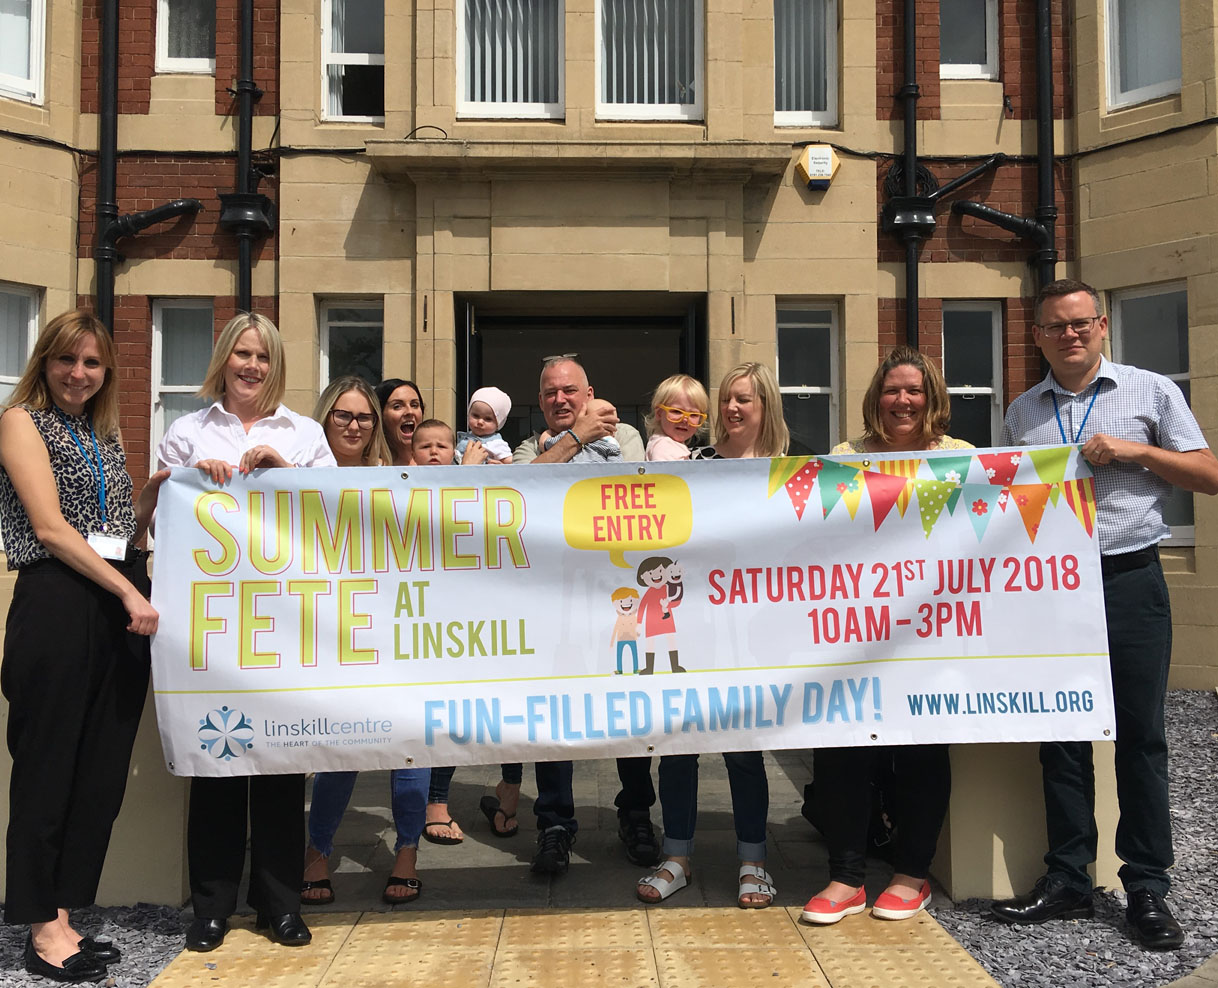 School's out, summer's here and time for the Linskill Summer Fete